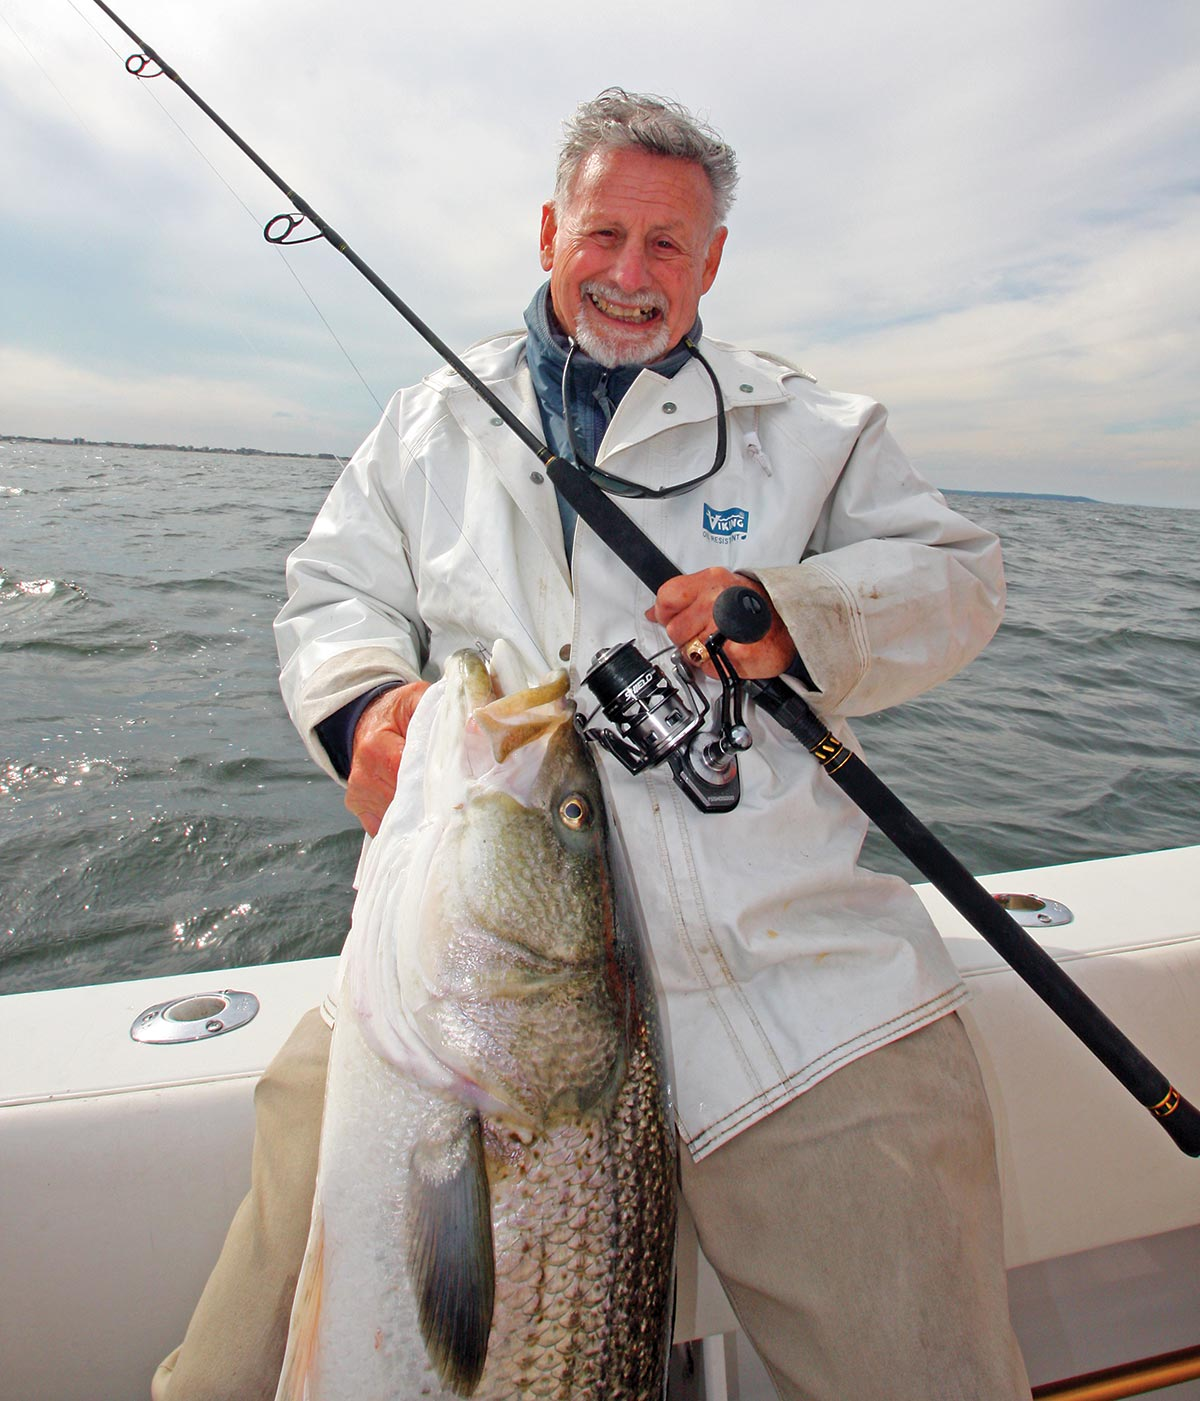 Capt. Al Ristori with his huge catch and a huge smile